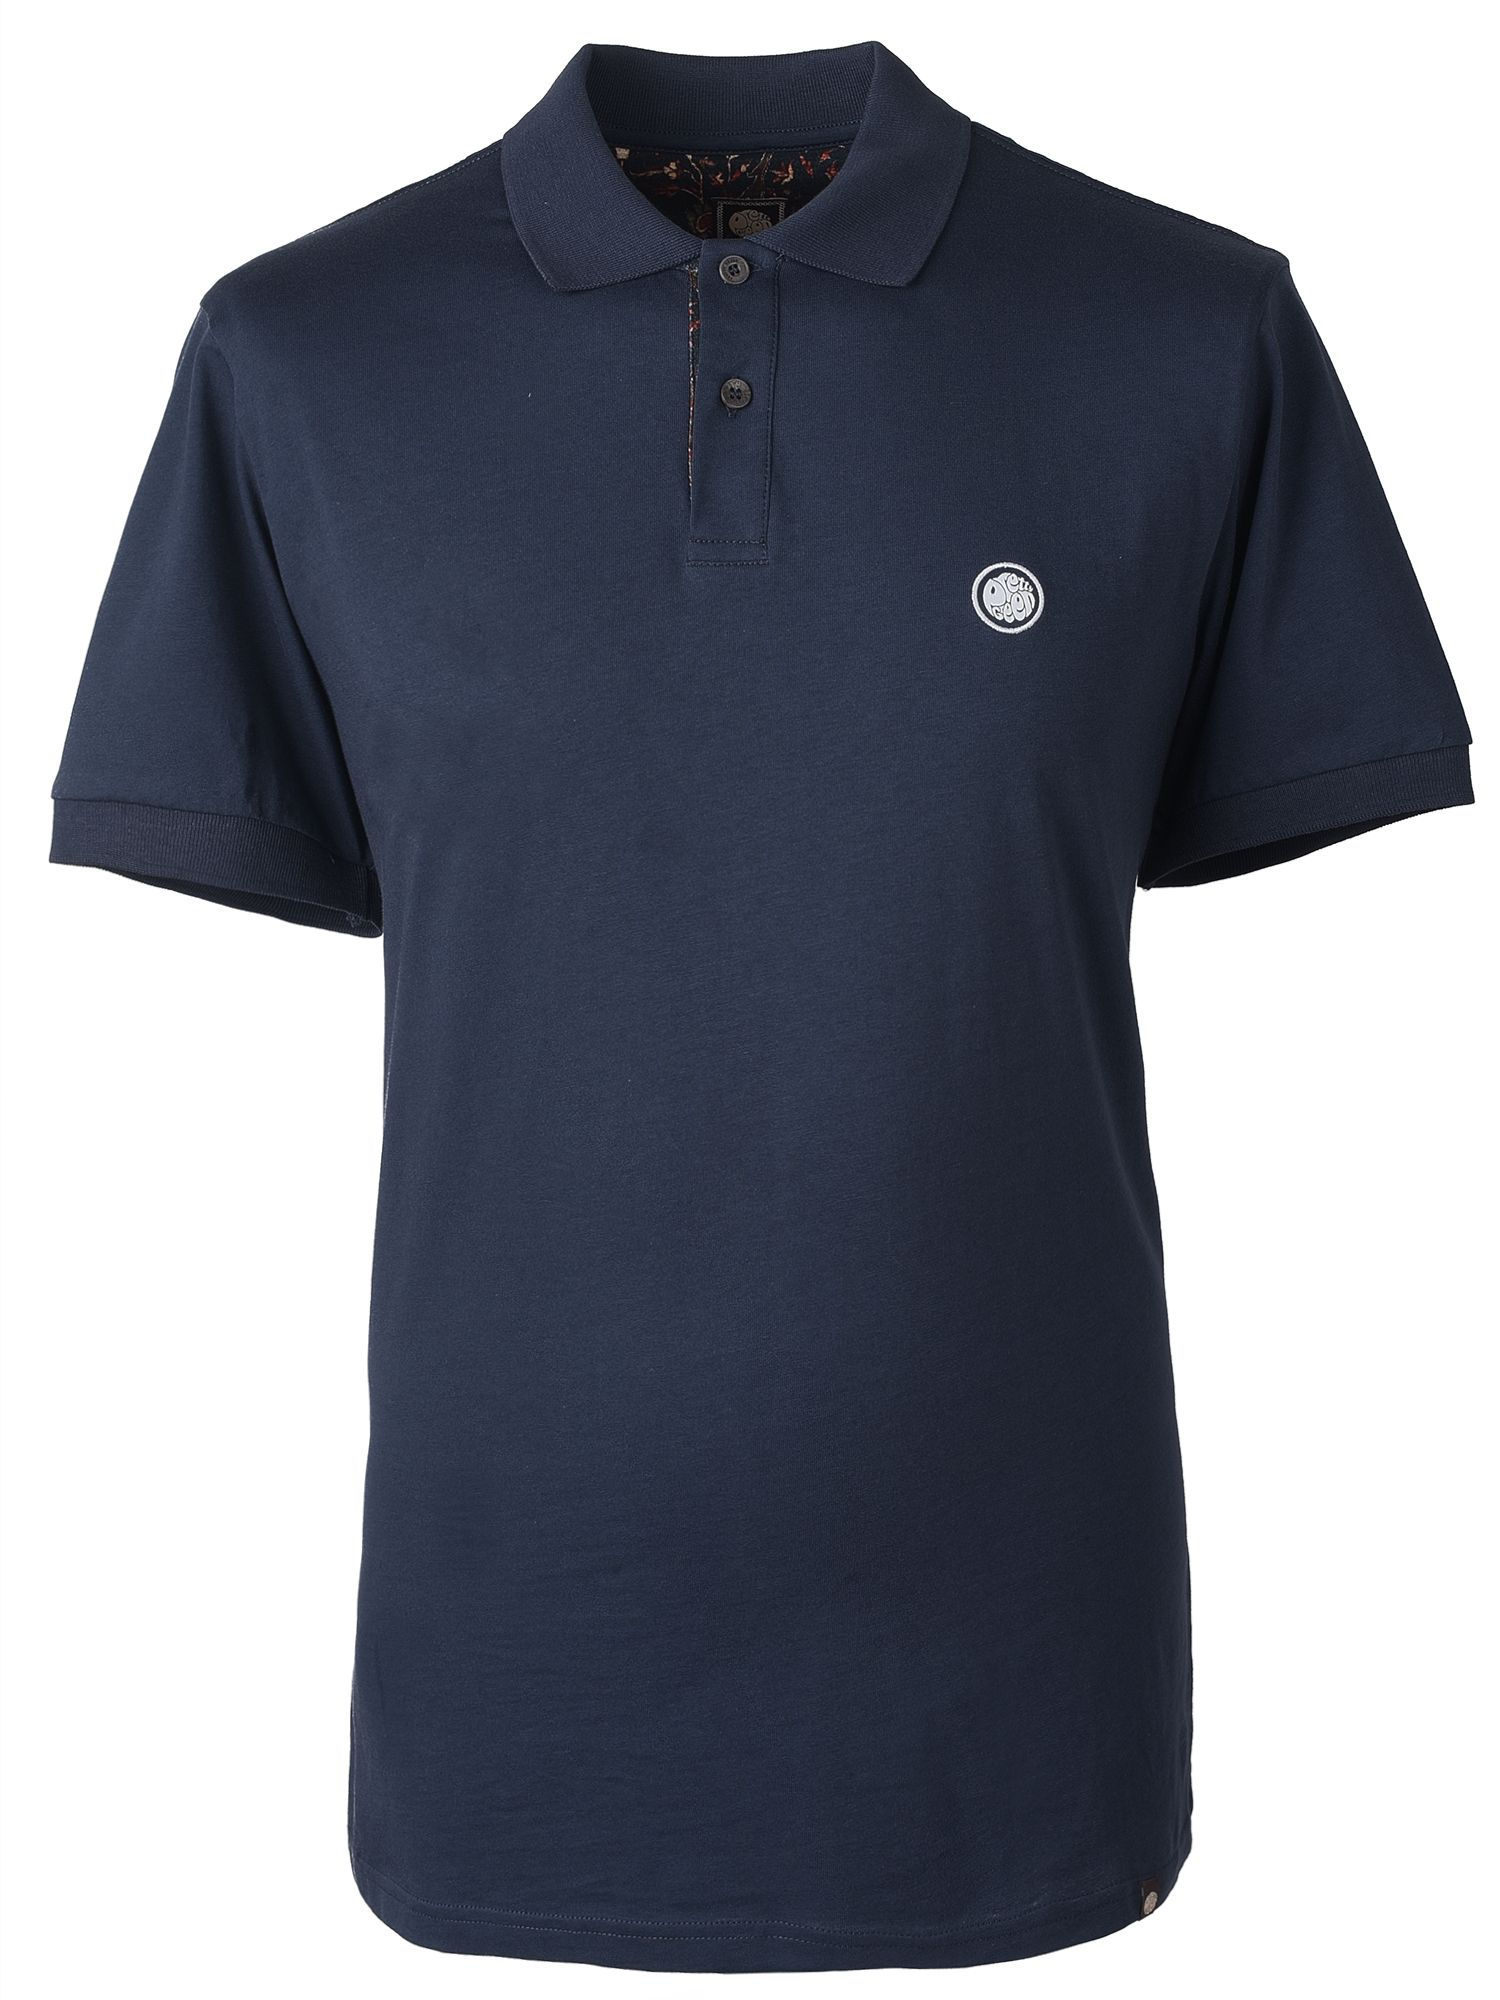 Men's Pretty Green Cotton Polo Shirt, Blue